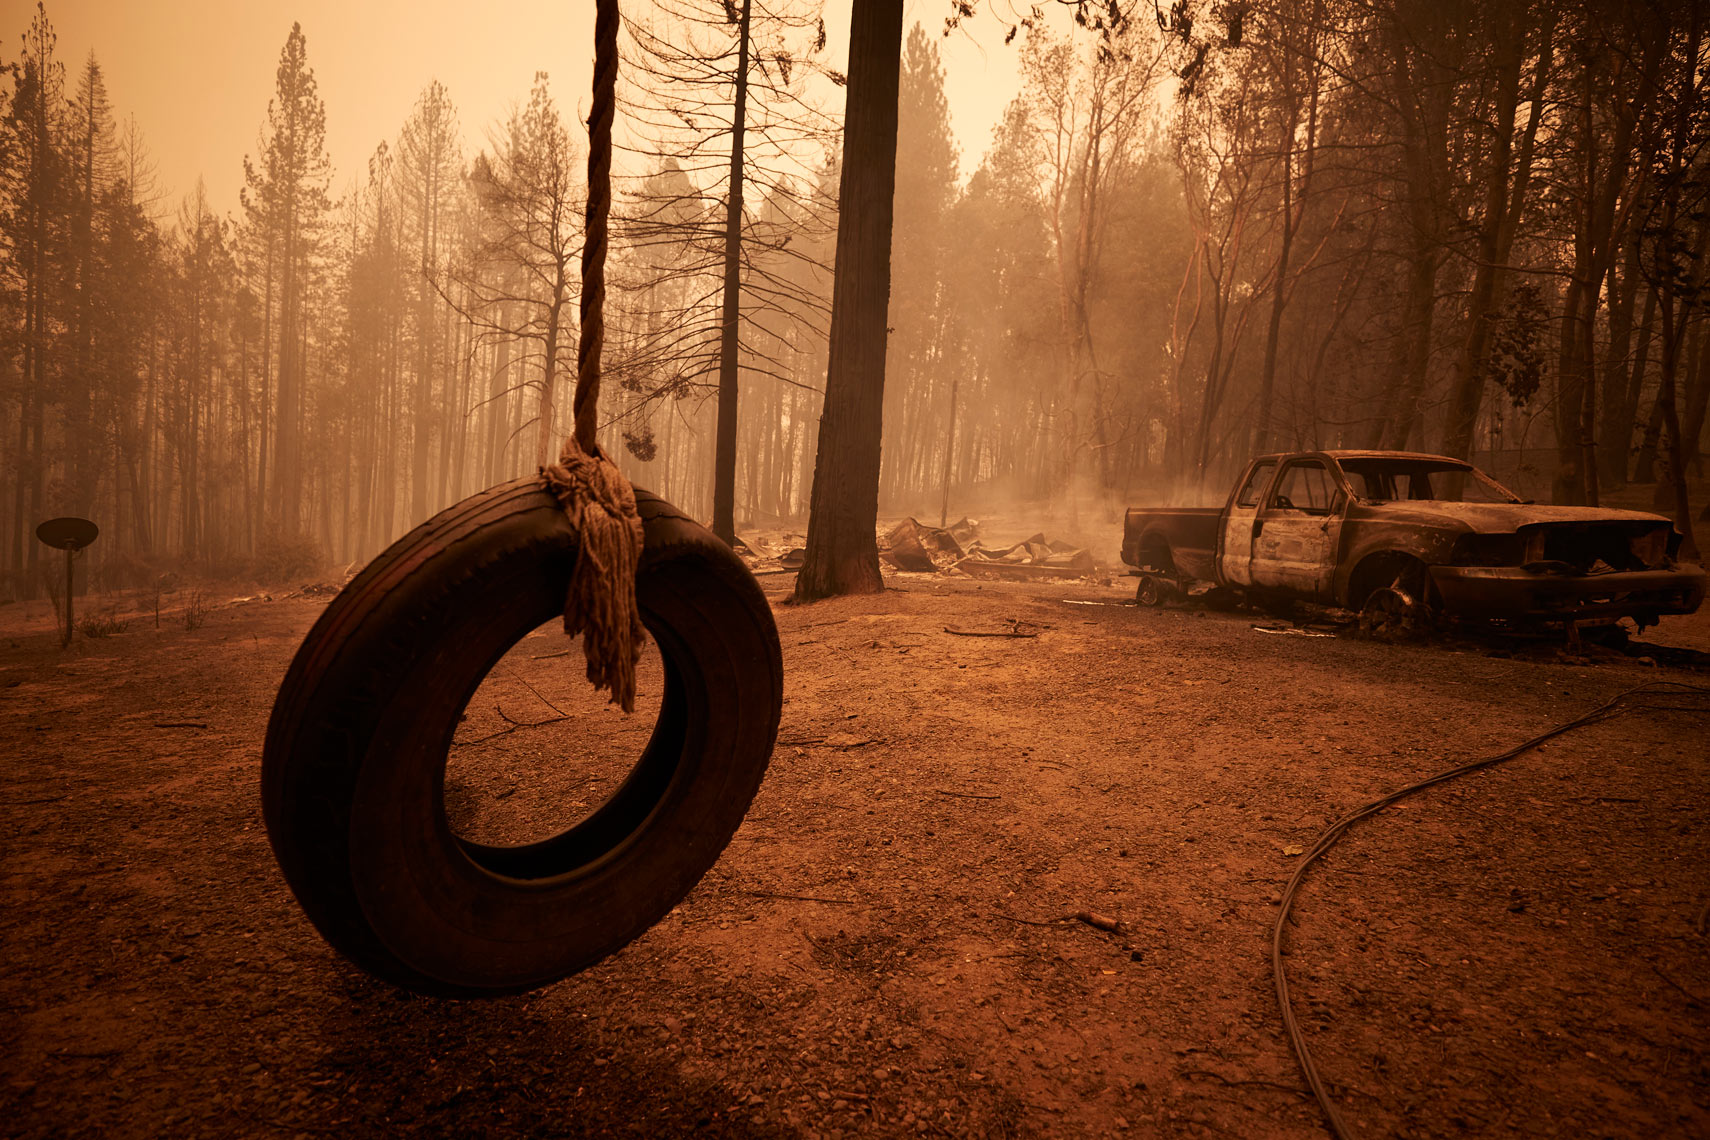 A Tire Swing and Burned Car after Wildfire